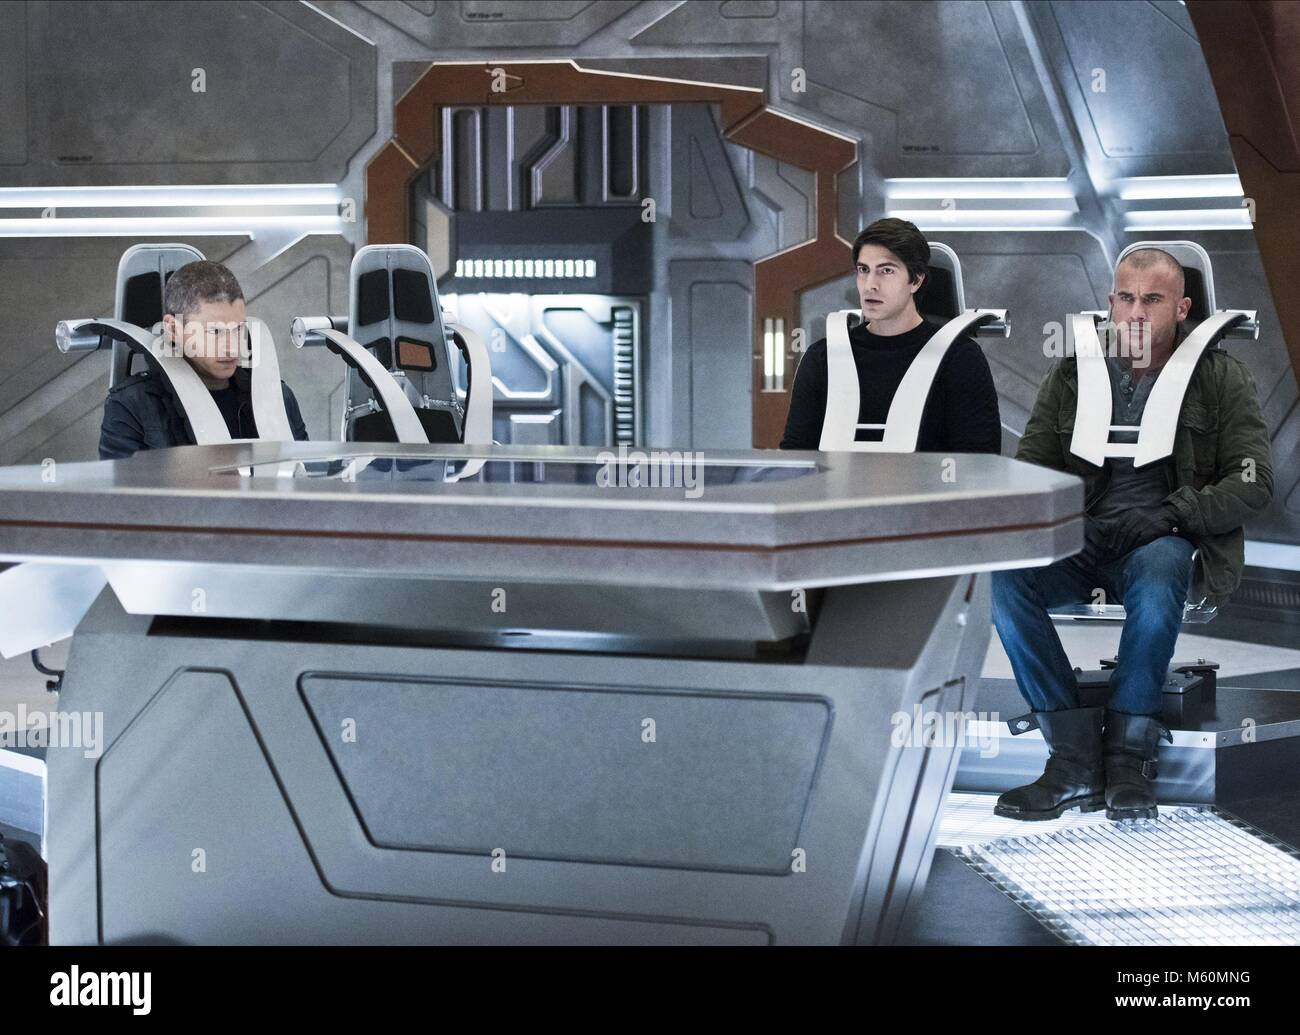 WENTWORTH MILLER BRANDON ROUTH & DOMINIC PURCELL LEGENDS OF TOMORROW (2016) - Stock Image